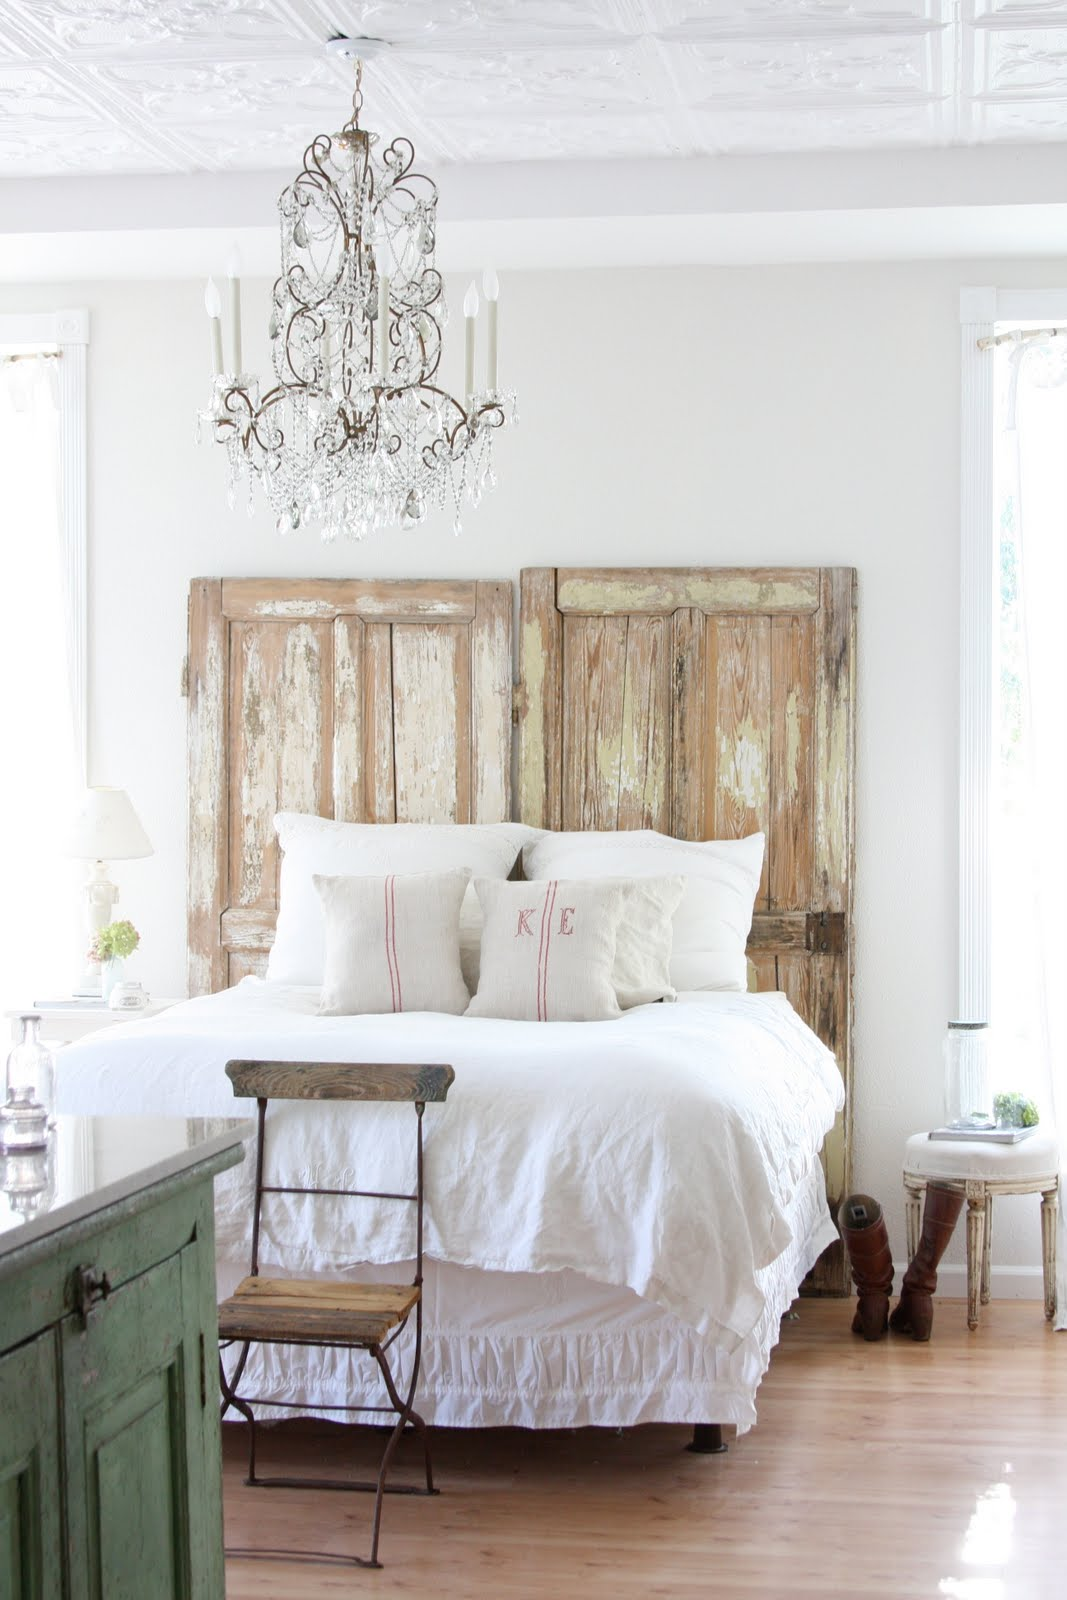 White Rustic Bedroom Ideas 34 diy headboard ideas